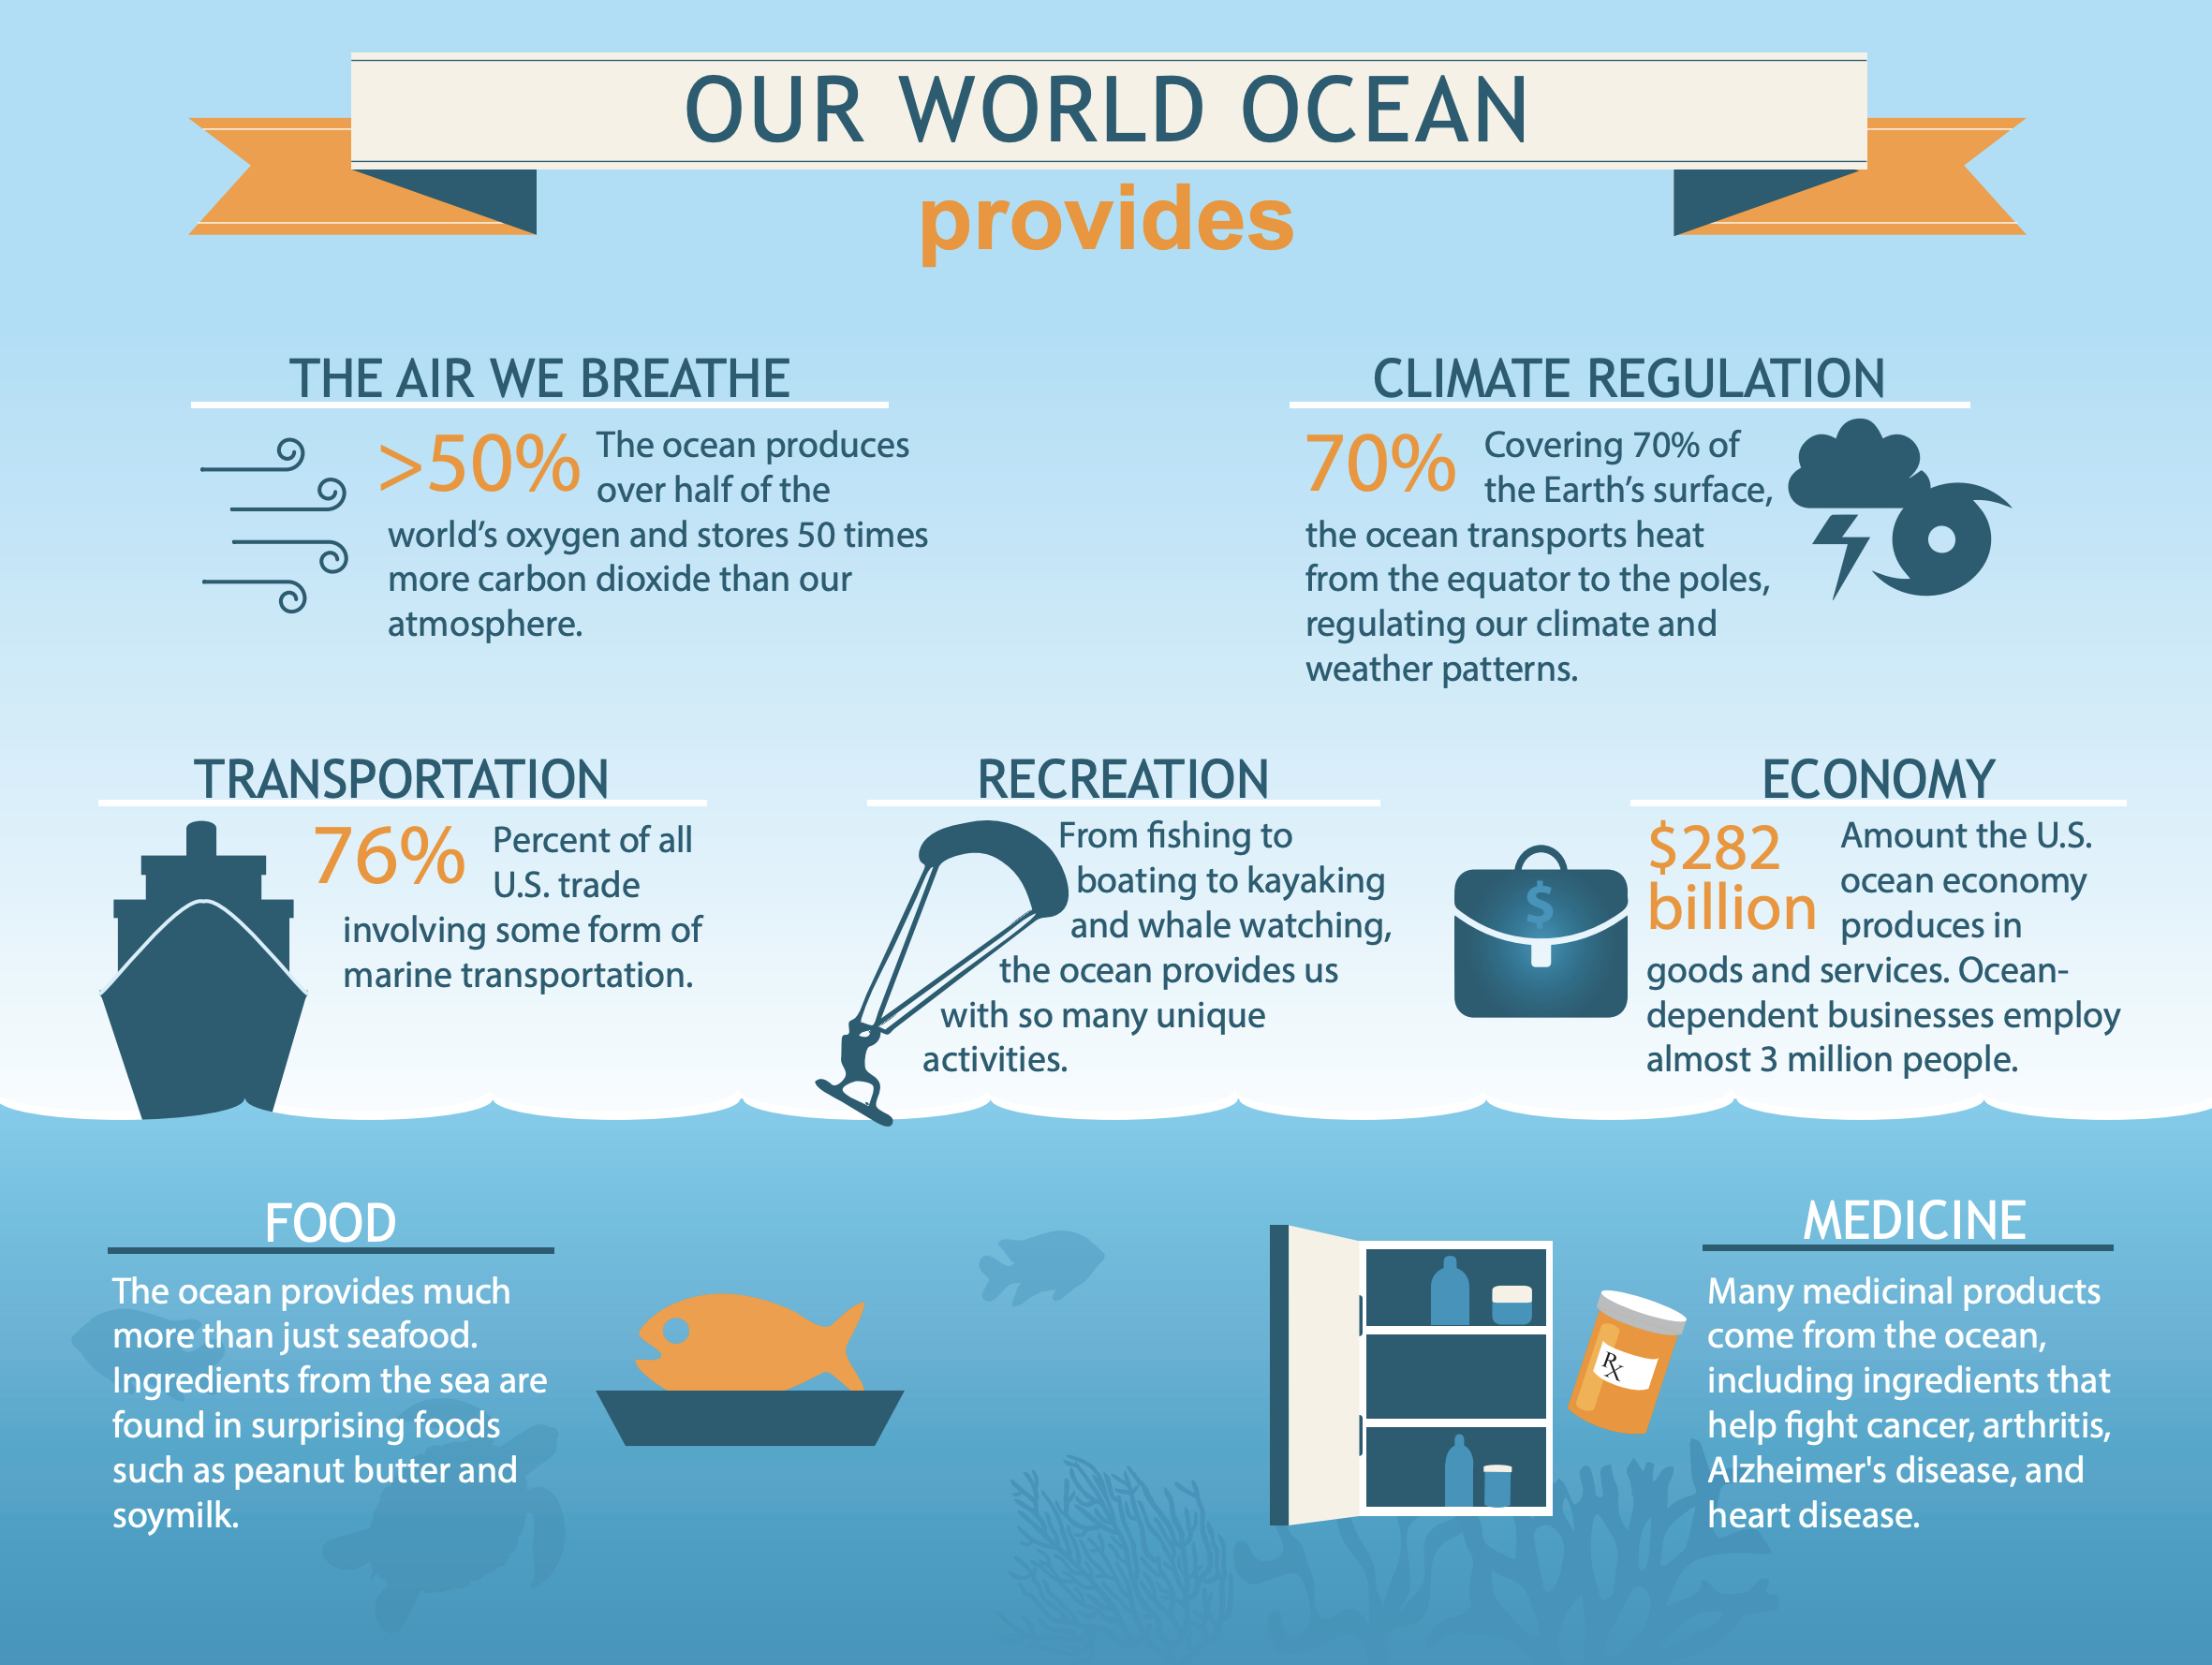 The oceans provide us with so much more than food